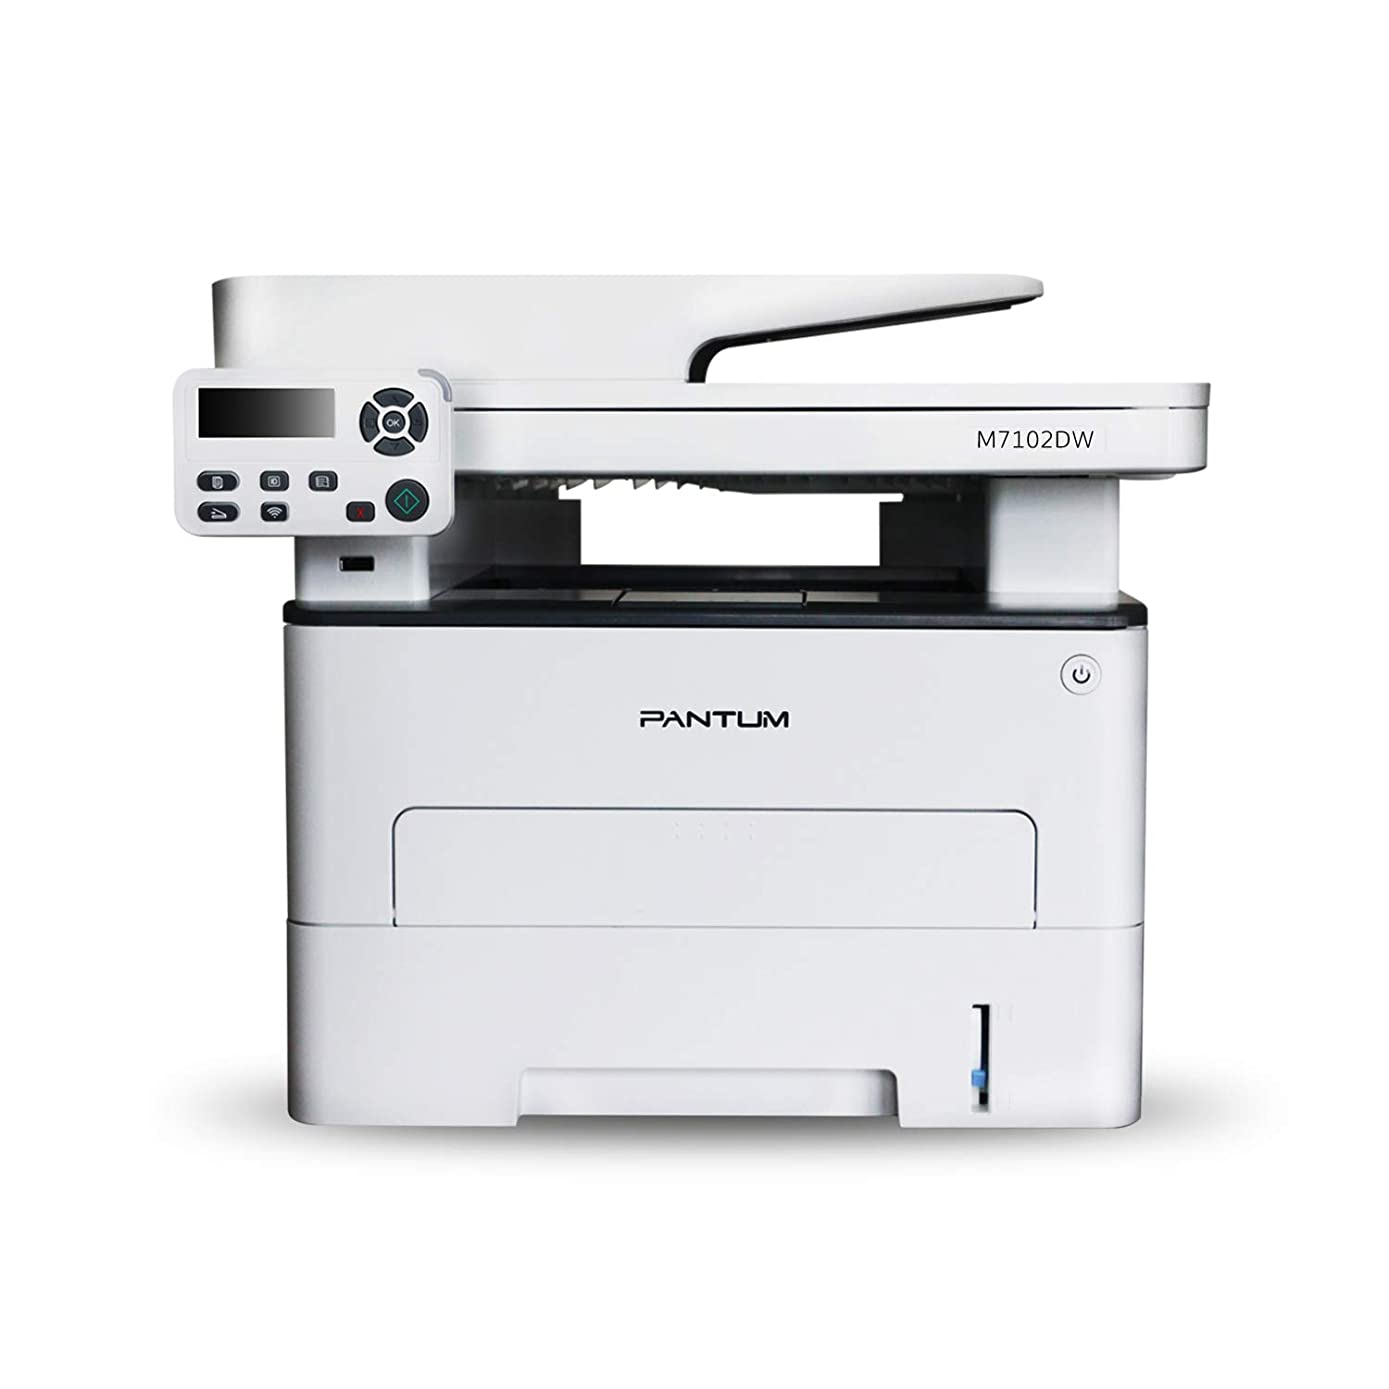 Pantum M7102DW Monochrome Laser Multifunction Printer with Copier Scanner, High Print and Copy Speed, Auto-Duplex Printing, Wireless Networking & USB 2.0